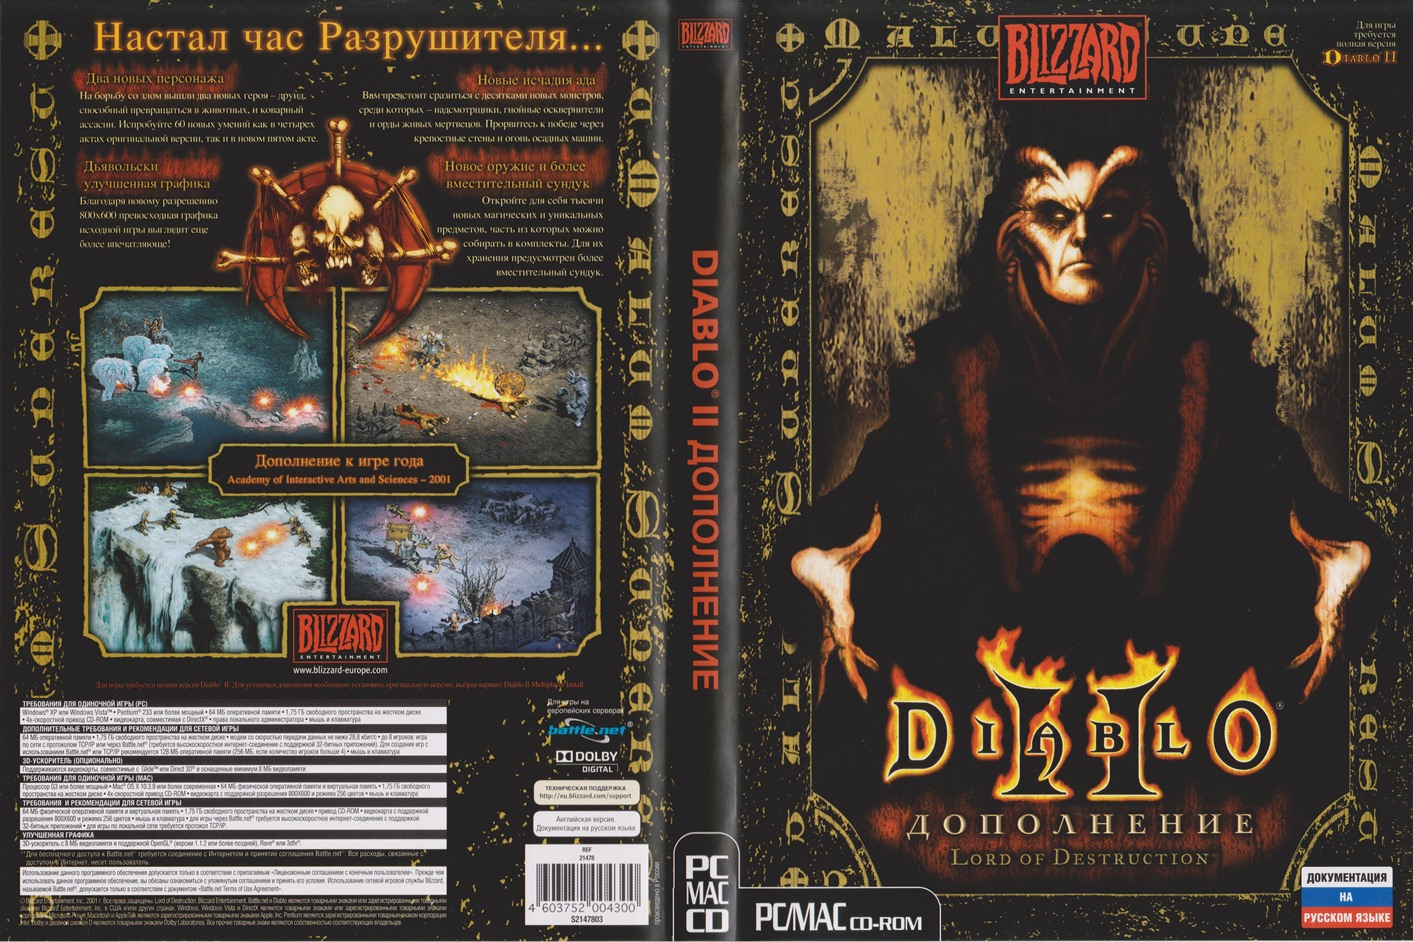 Diablo 2 - Lord of Destruction - Reg Free - Worldwide